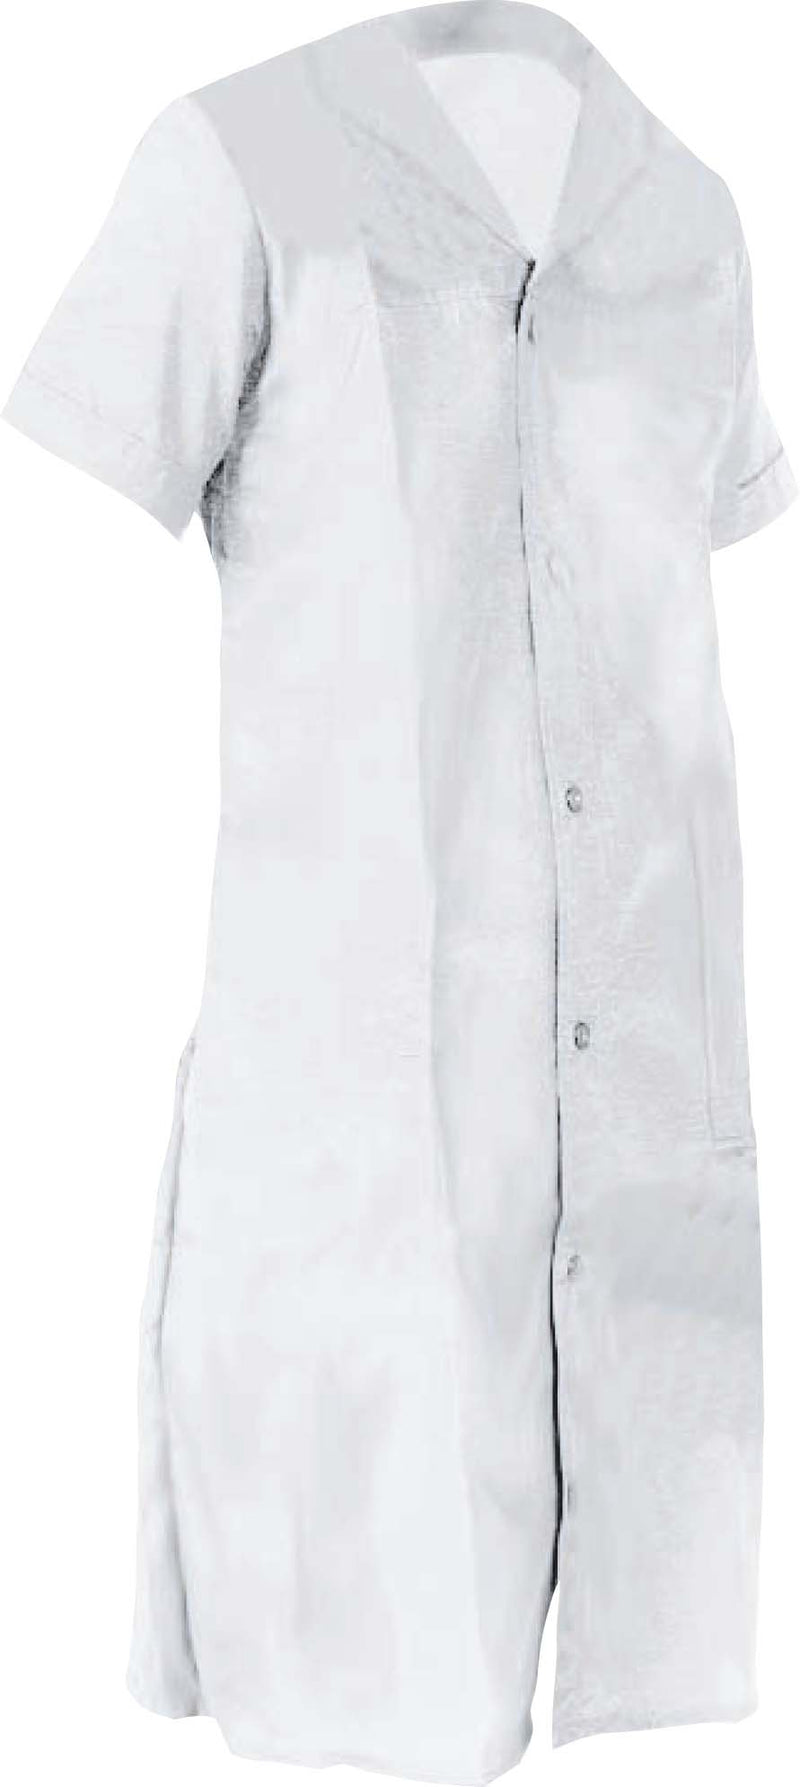 Ladies Housekeeping 1Pc - White X - Large UNI5044 |  | wedoall.co.za